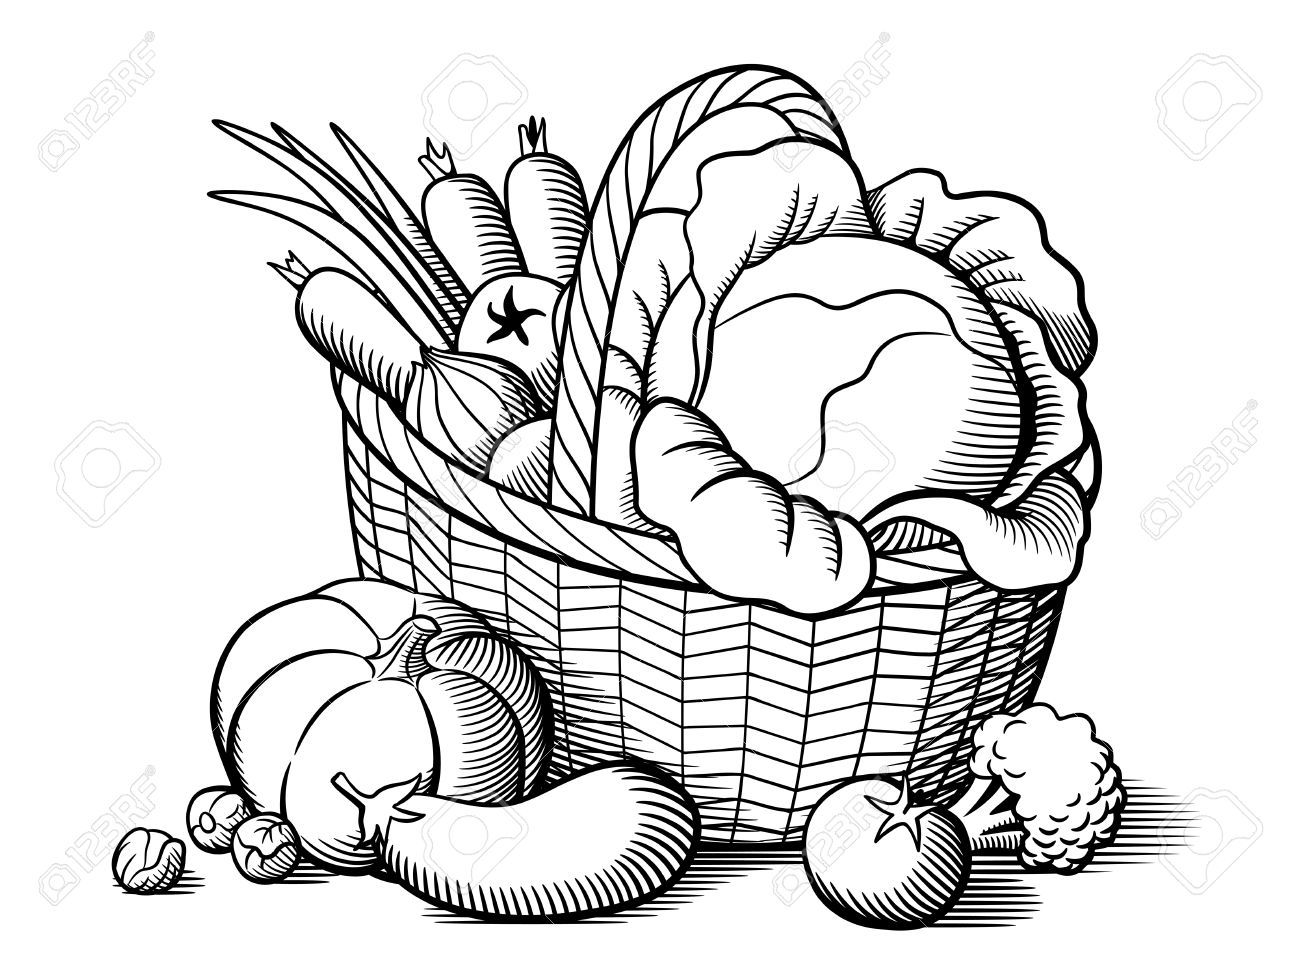 Free clipart vegetables black and white 4 » Clipart Portal.